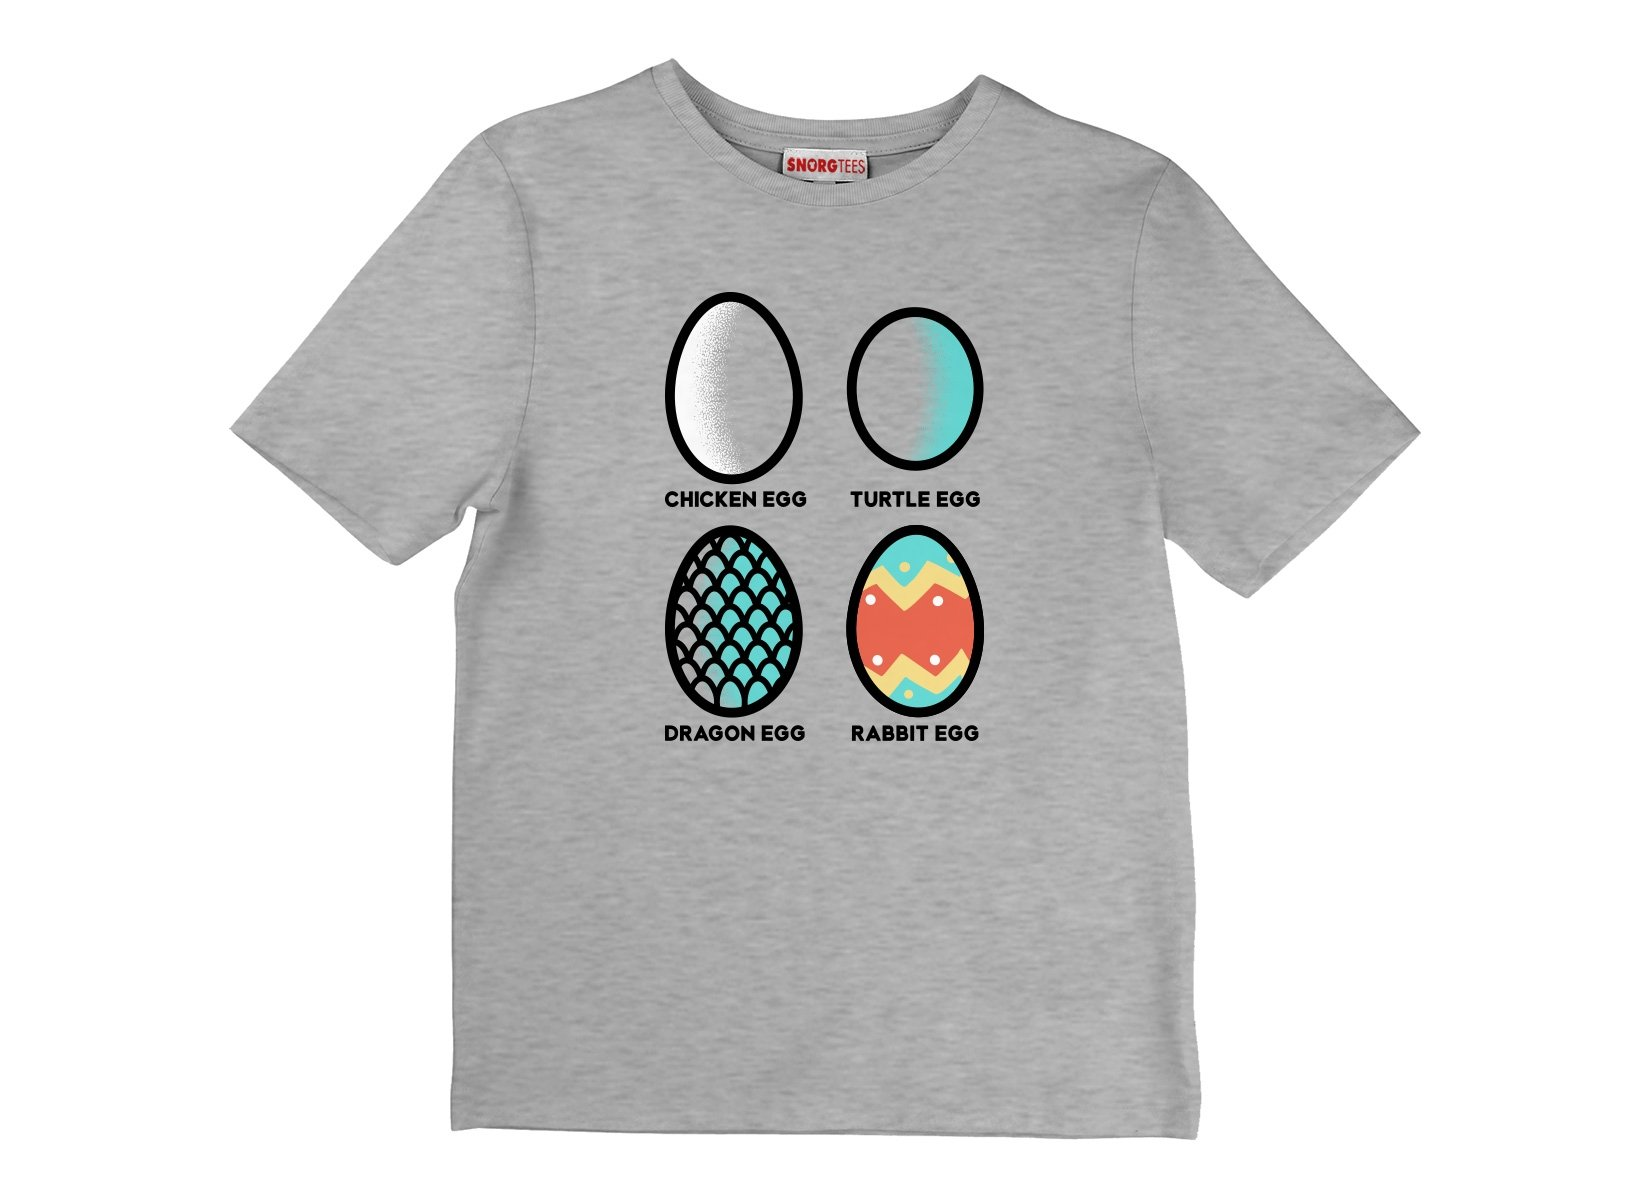 Rabbit Egg on Kids T-Shirt